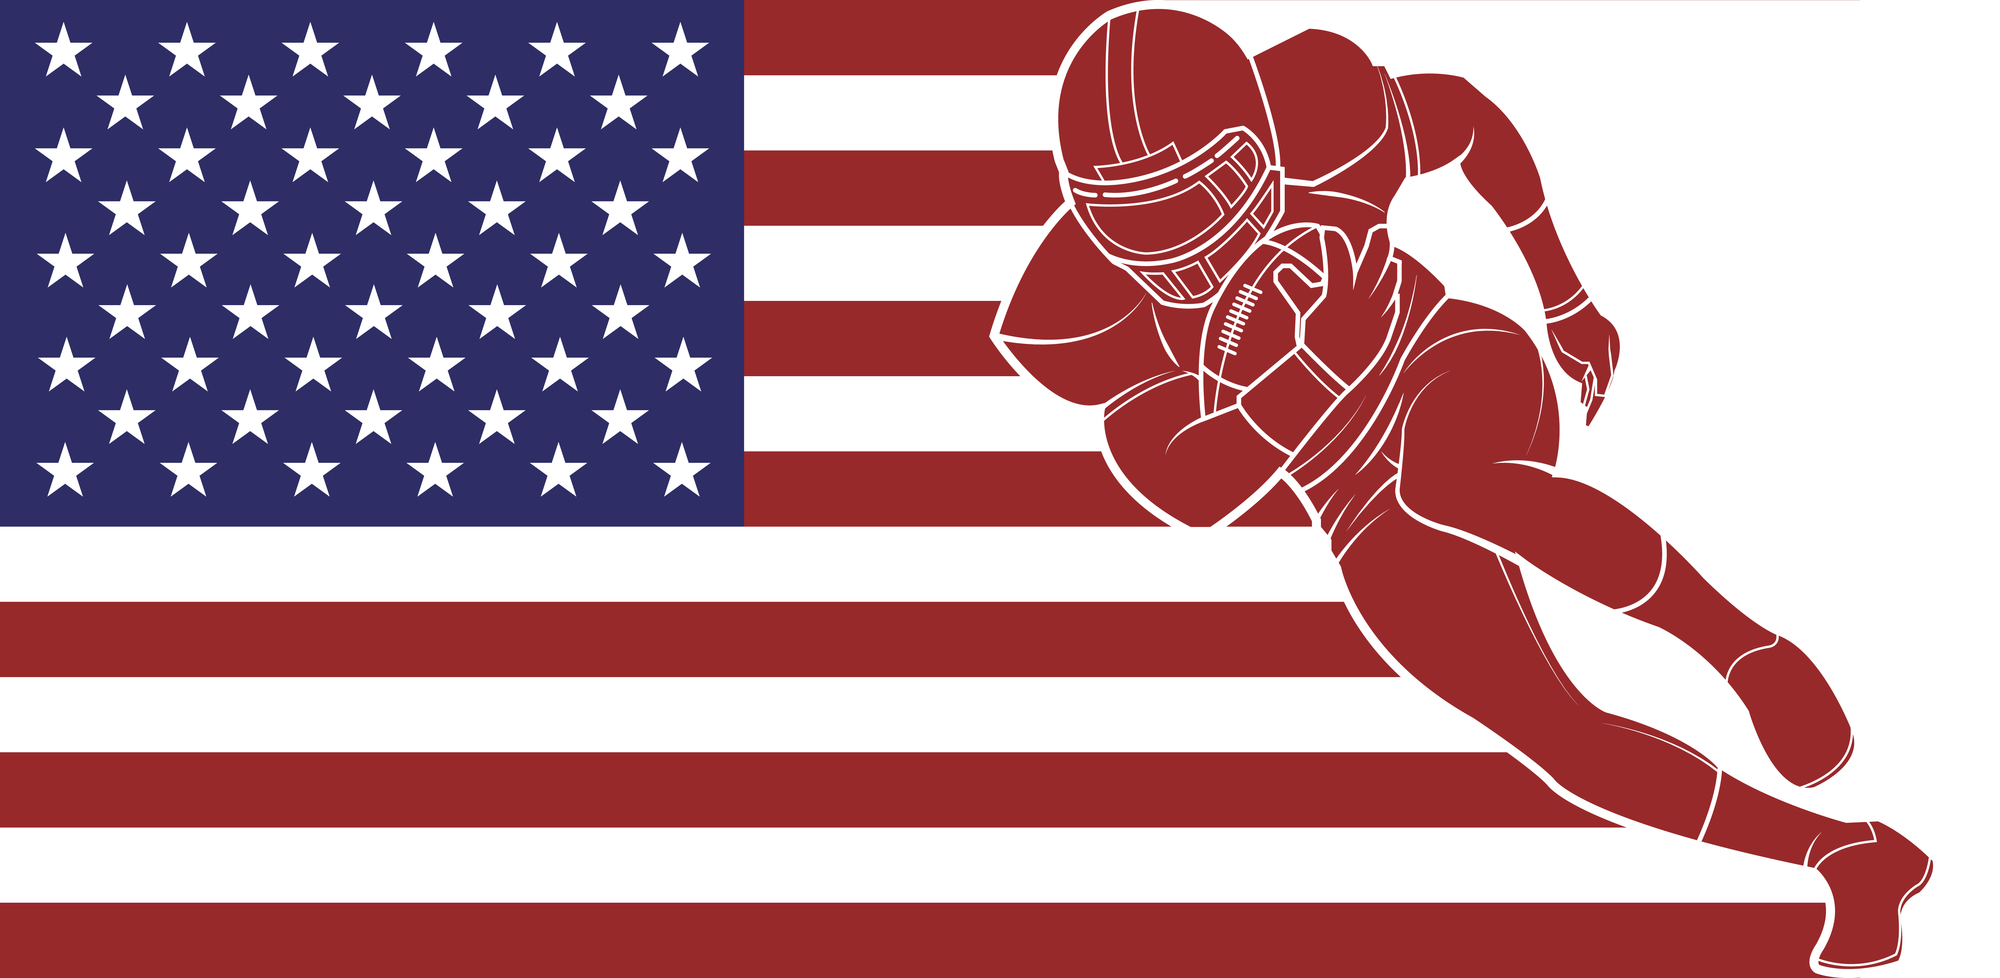 American football running with the ball on flag background.